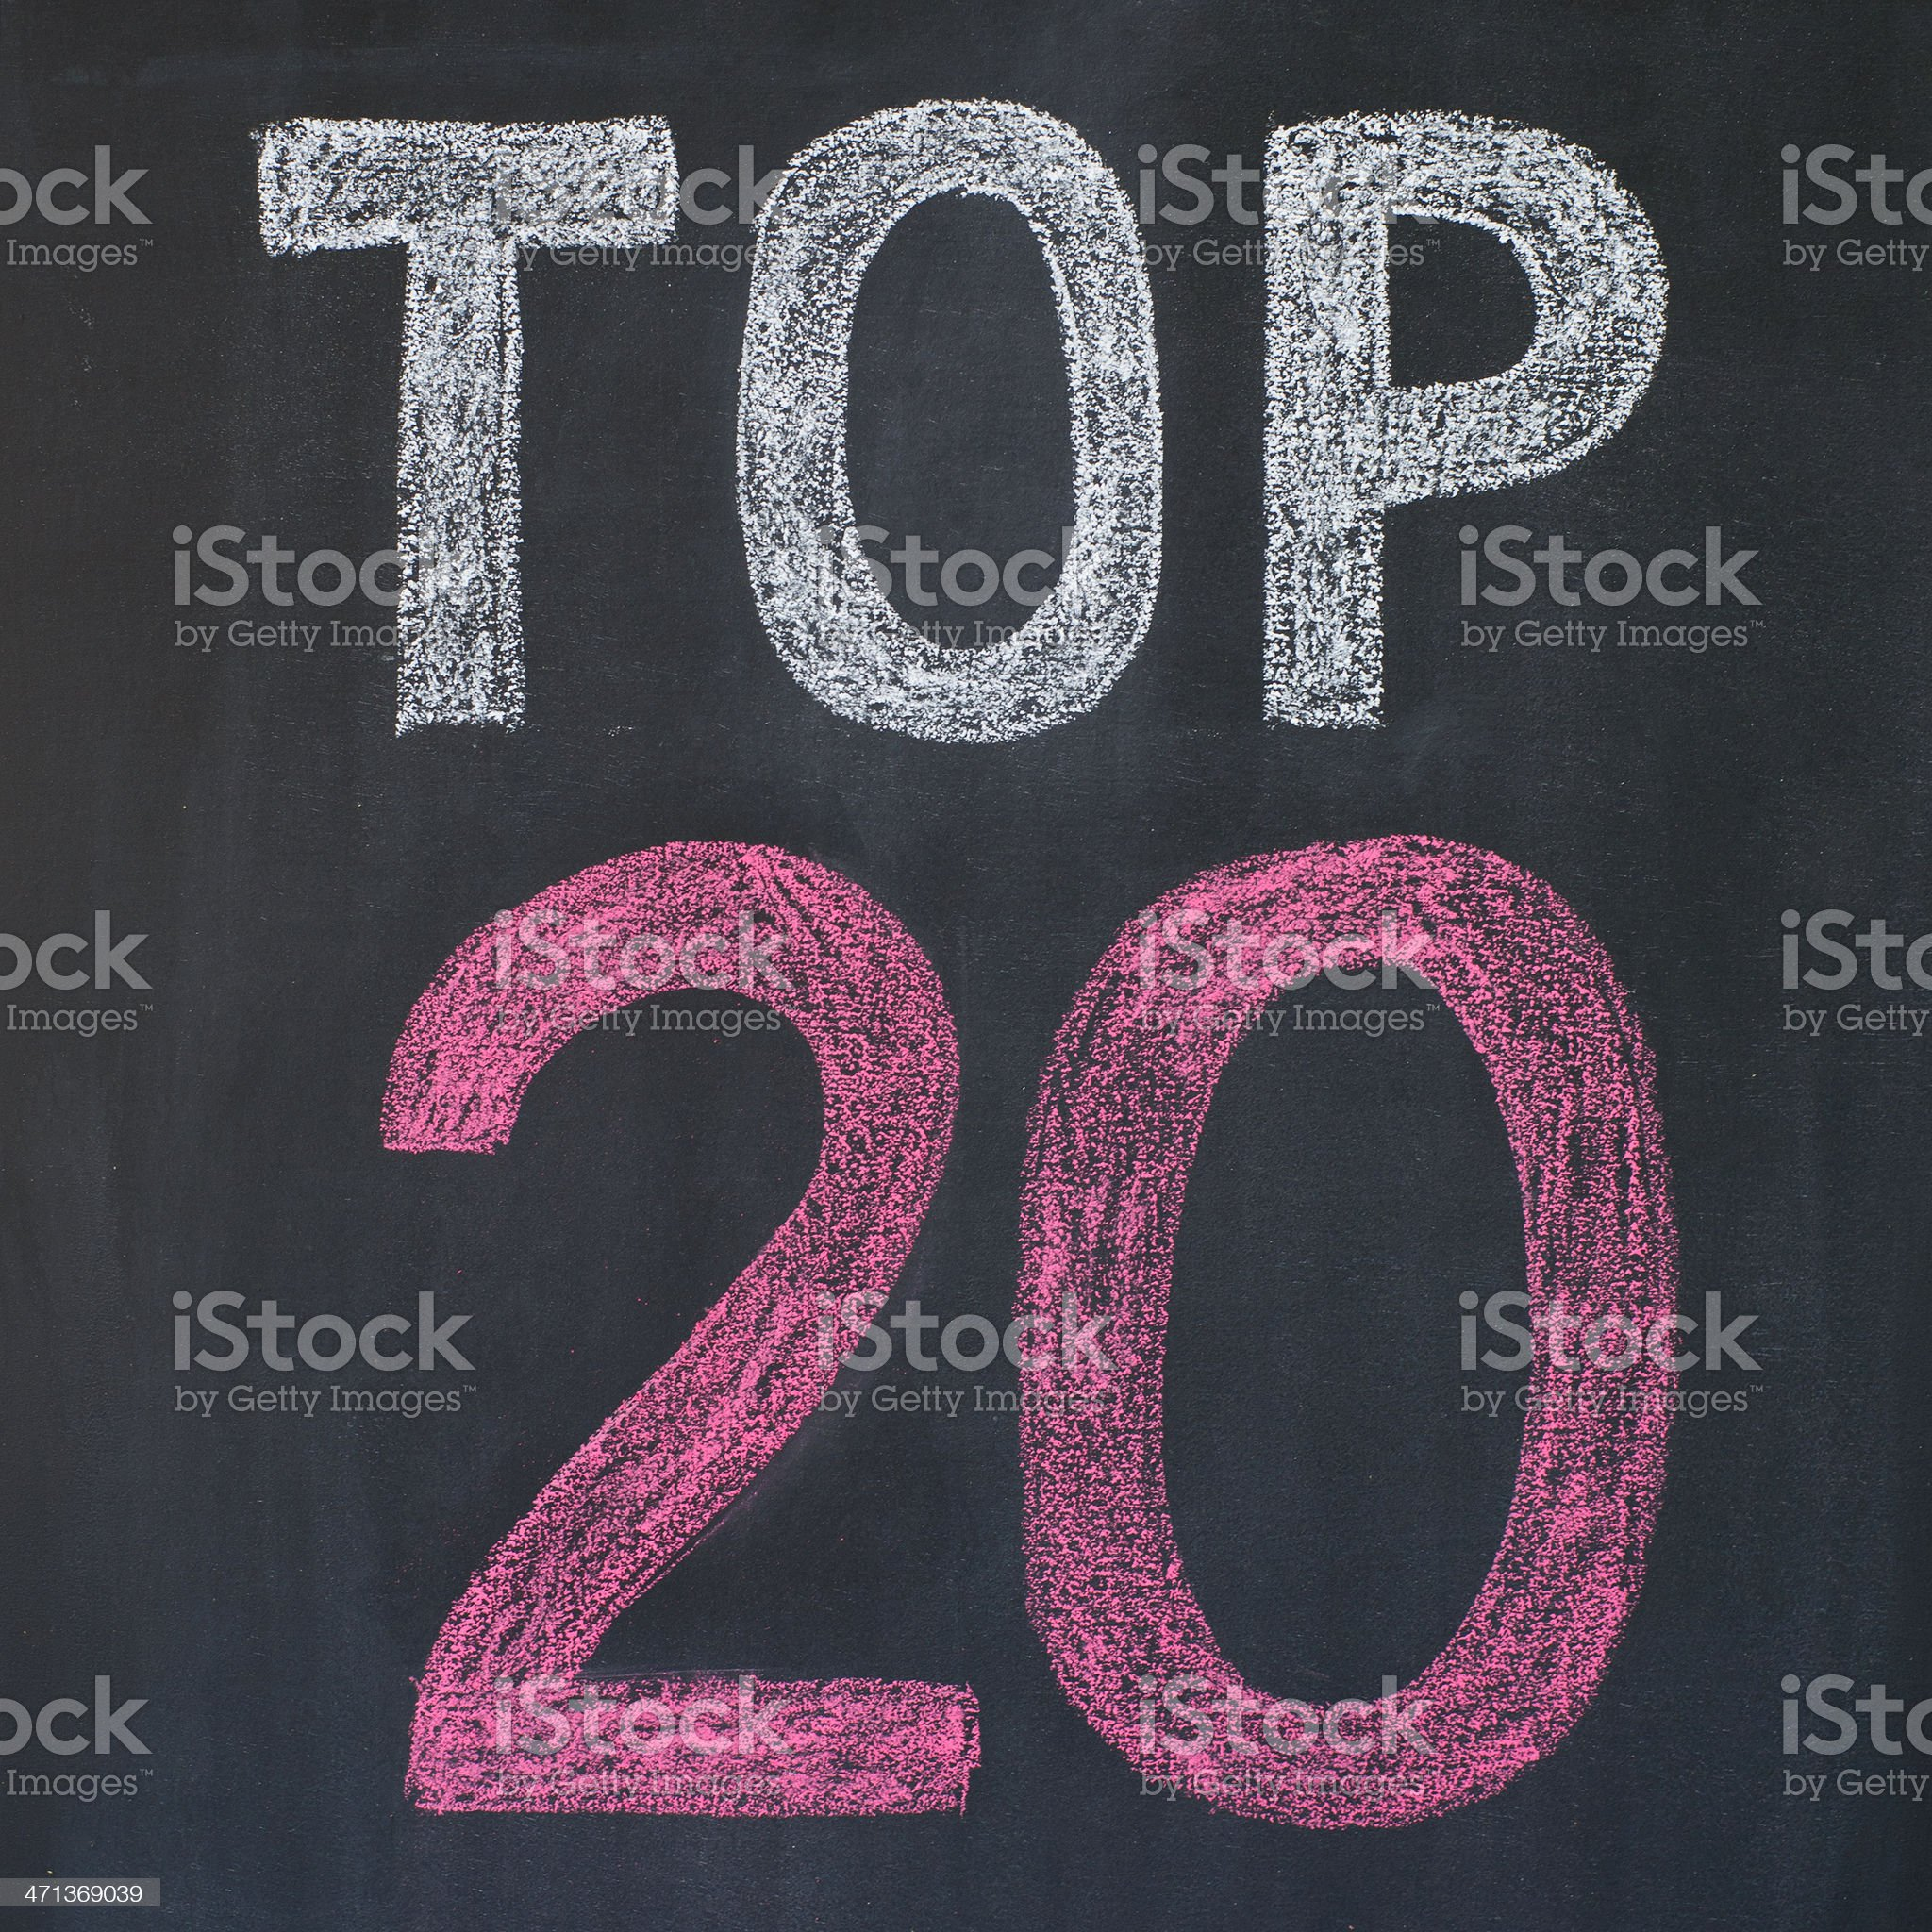 Top 20 royalty-free stock photo